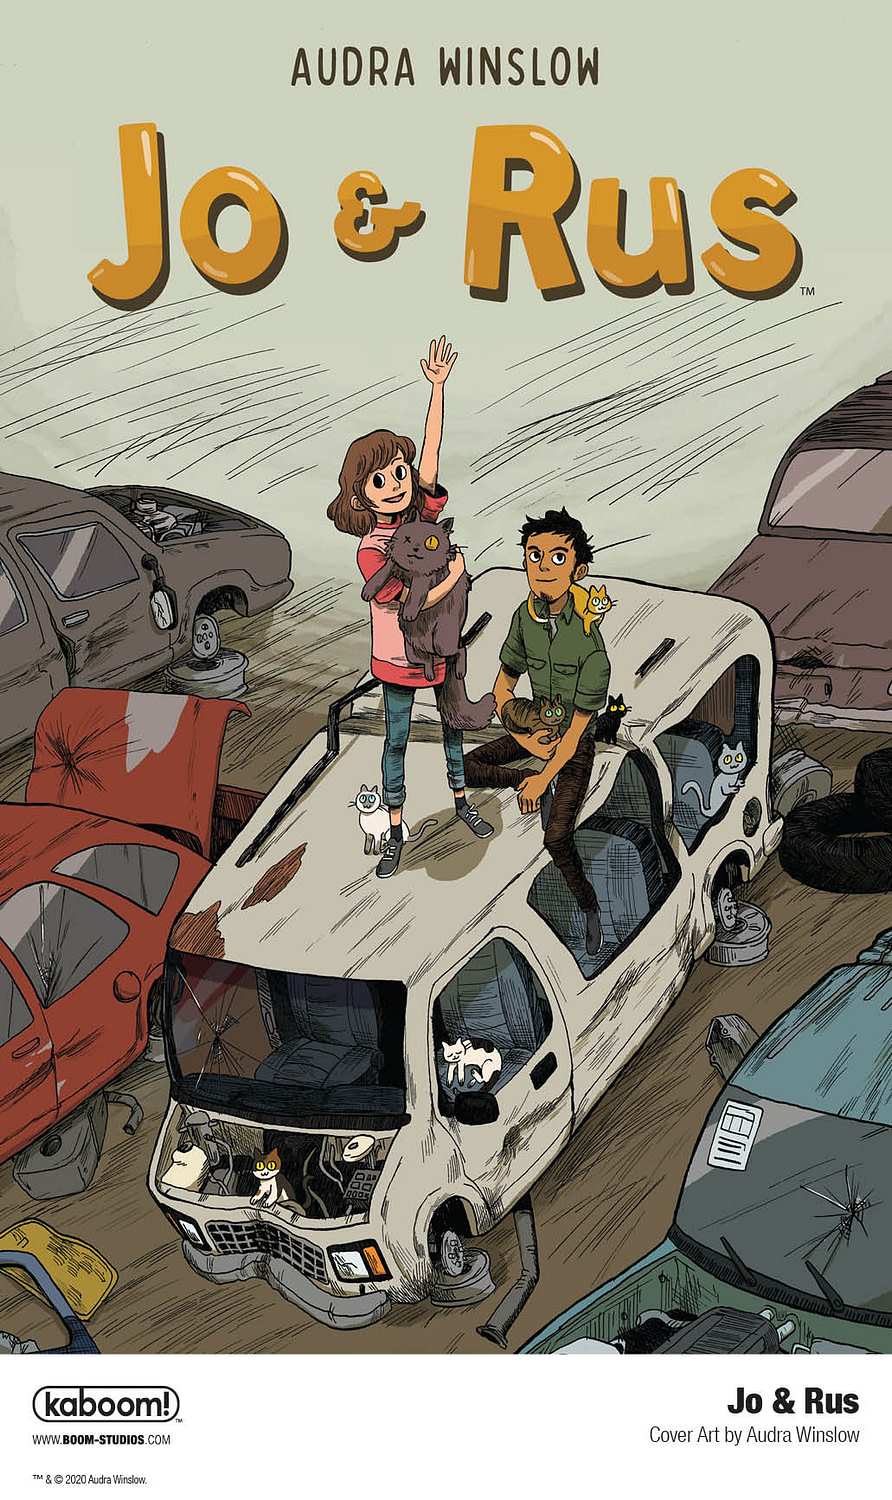 BOOM! Harnesses Power of Friendship with Middle Grade Graphic Novel Jo & Rus